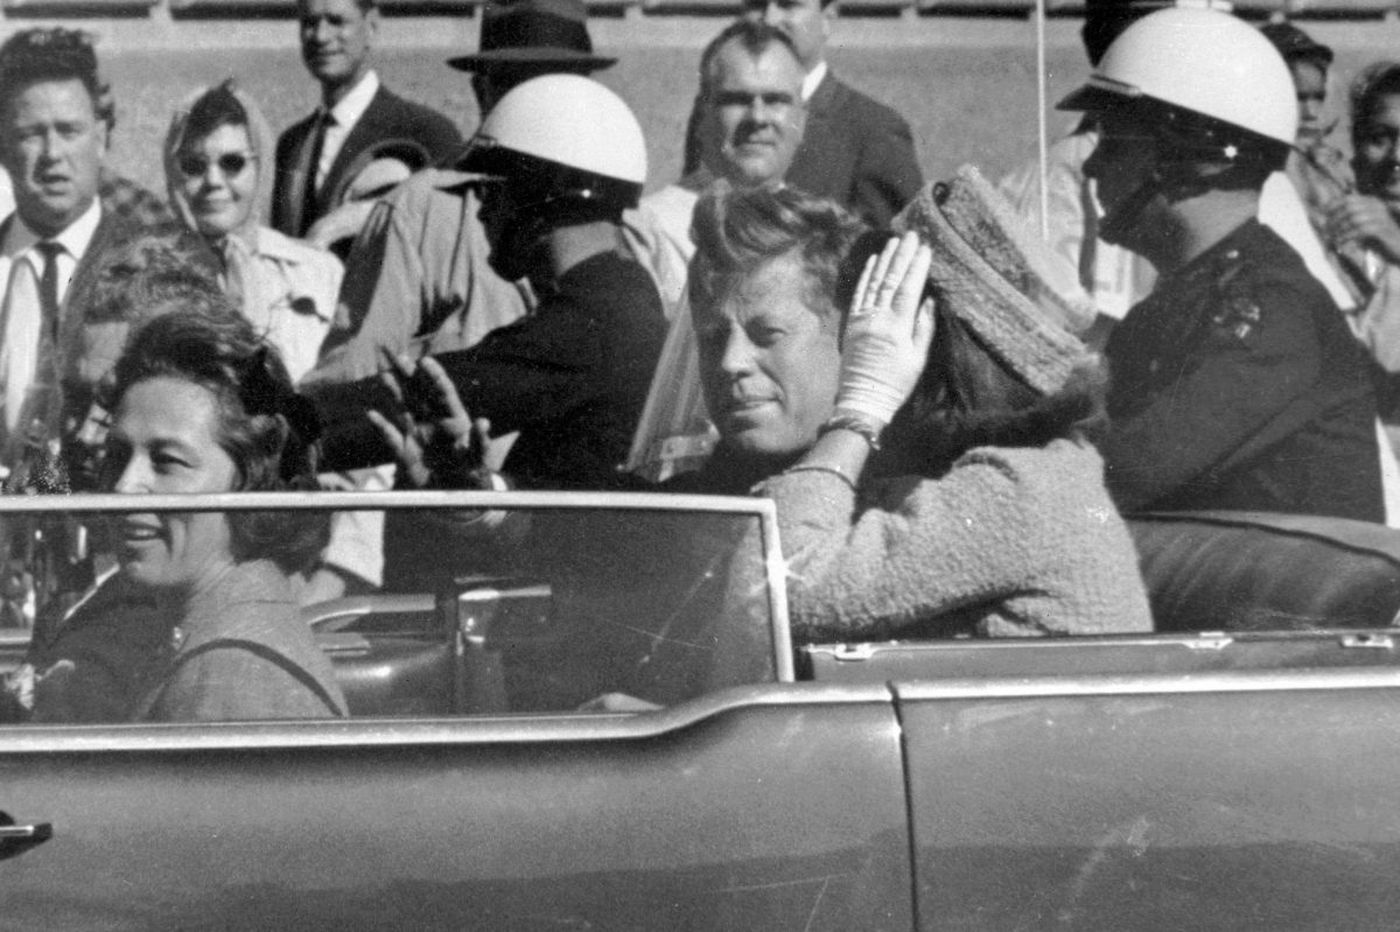 Never-ending JFK assassination cover-up is how we got into this mess | Will Bunch